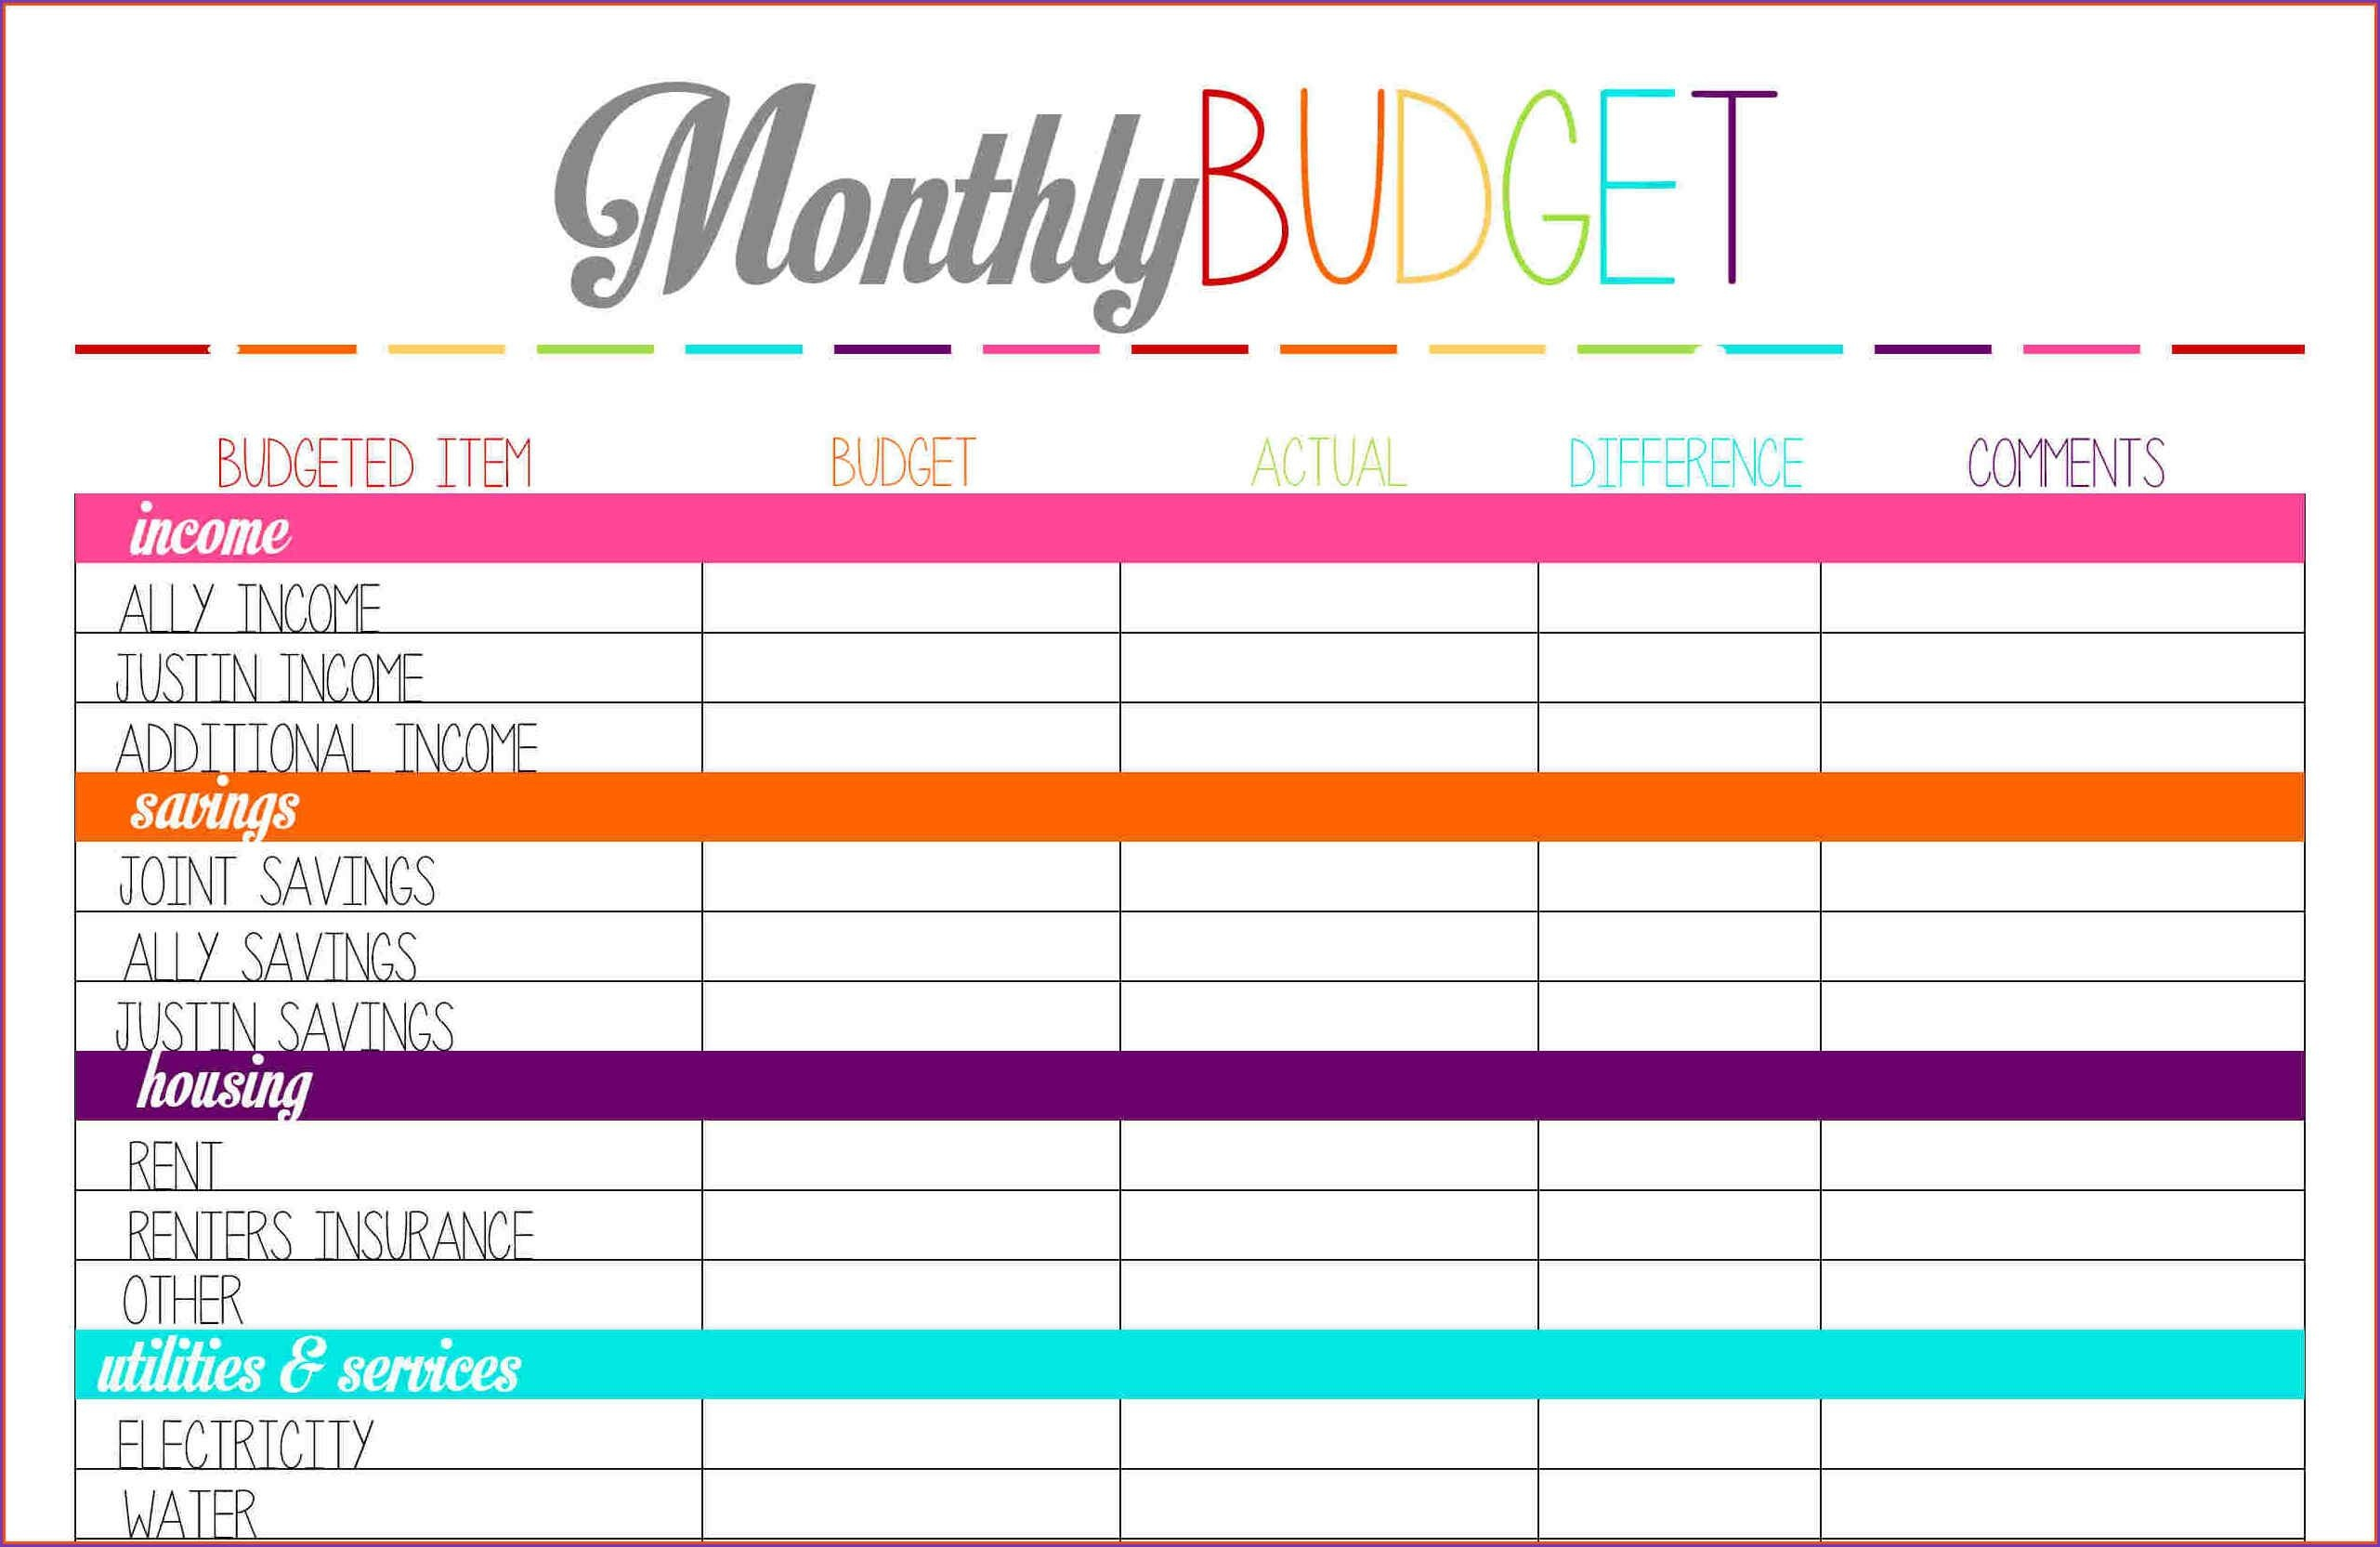 005 Free Monthly Budget Template 20Family Oninstall Budgeting - Free Budget Printable Template